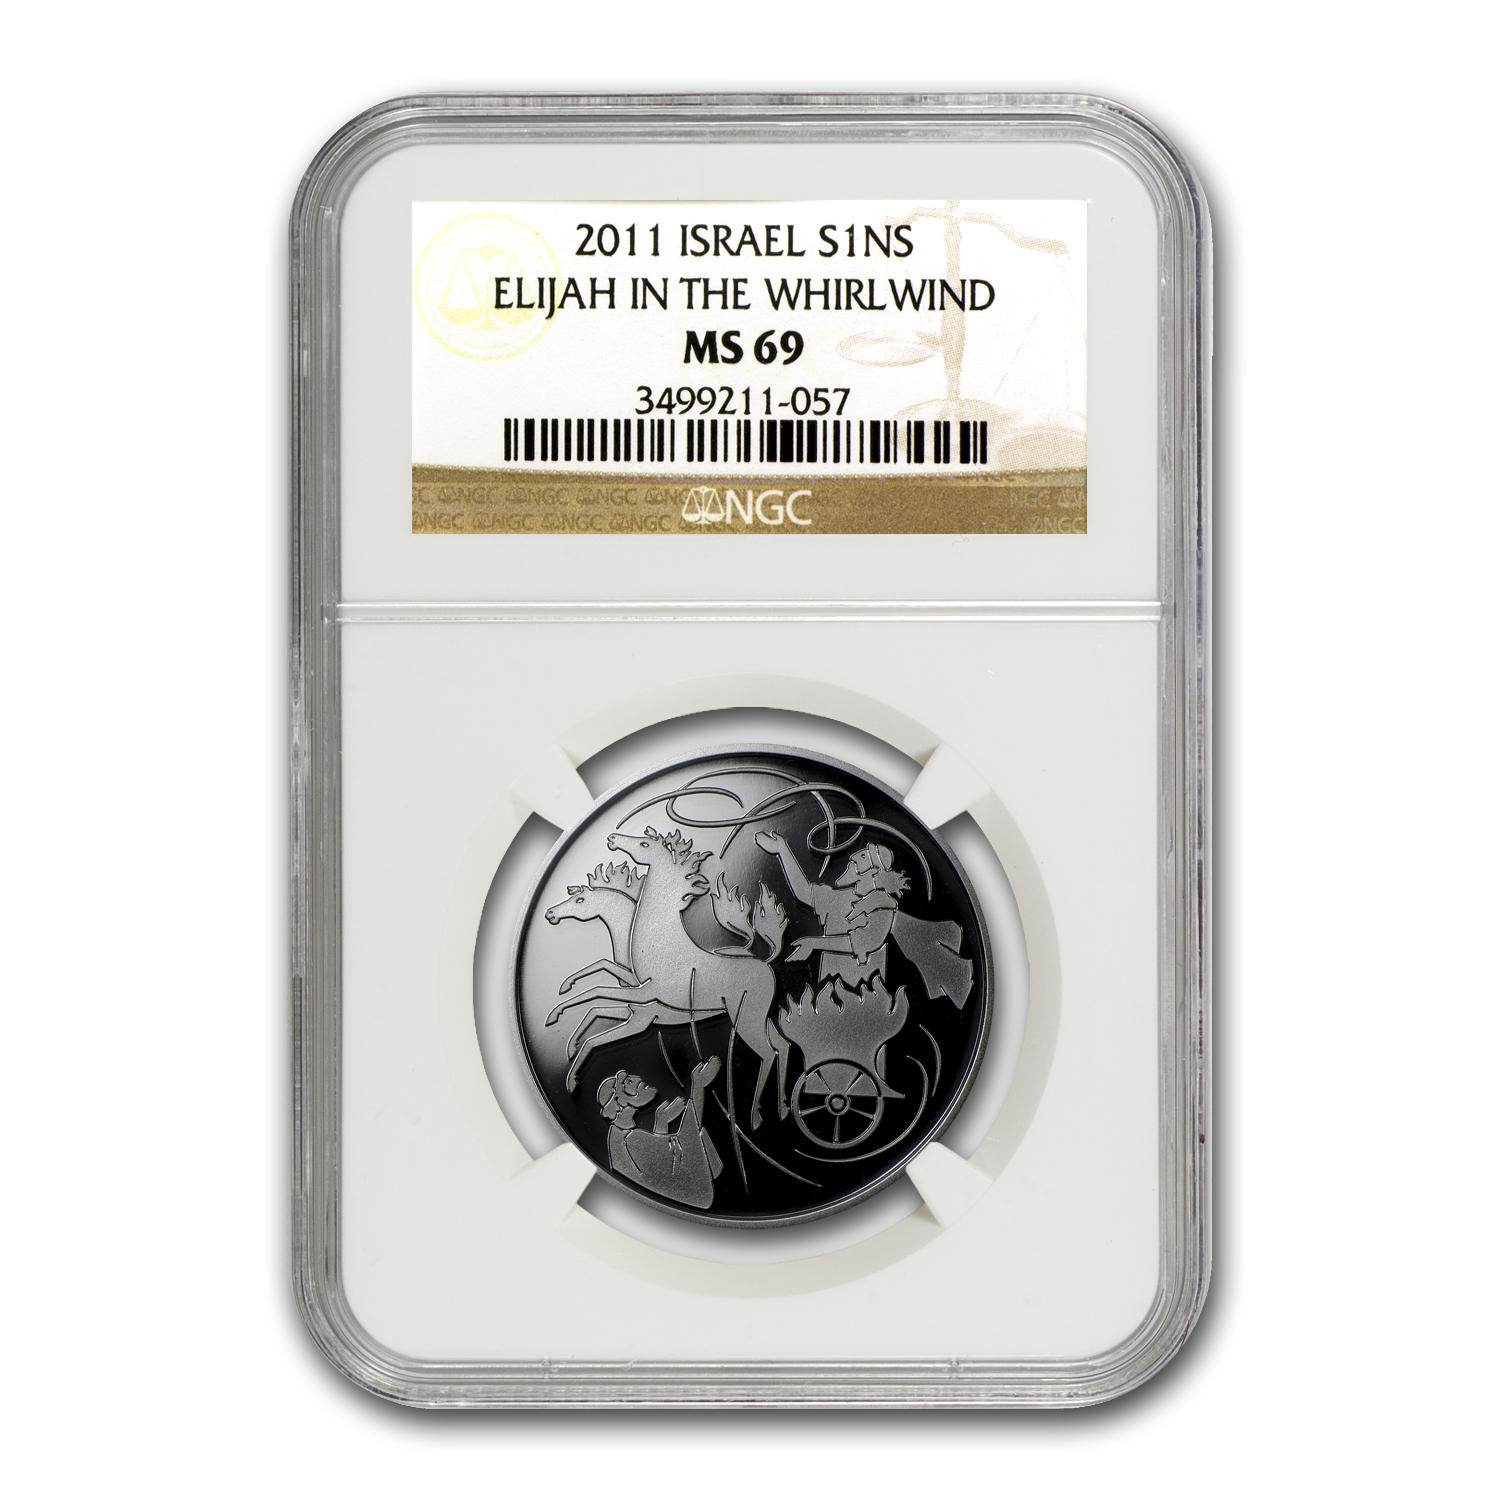 2011 Israel Silver 1 NIS Elijah in the Whirlwind MS-69 NGC